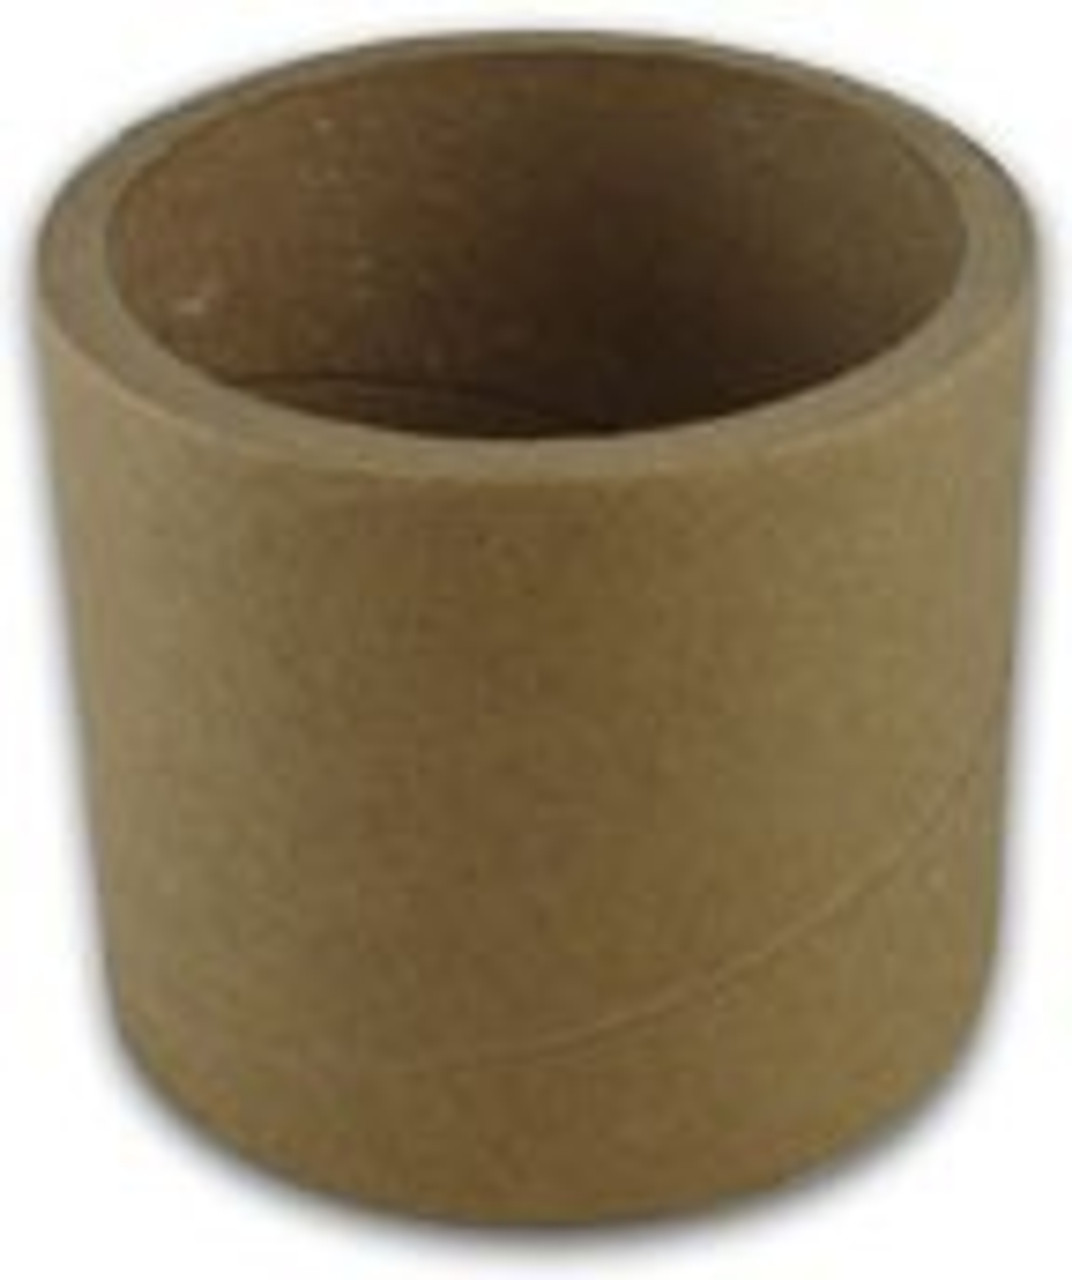 "Empty Cores 3"" X 6 1/8"" wide - Box of 25 